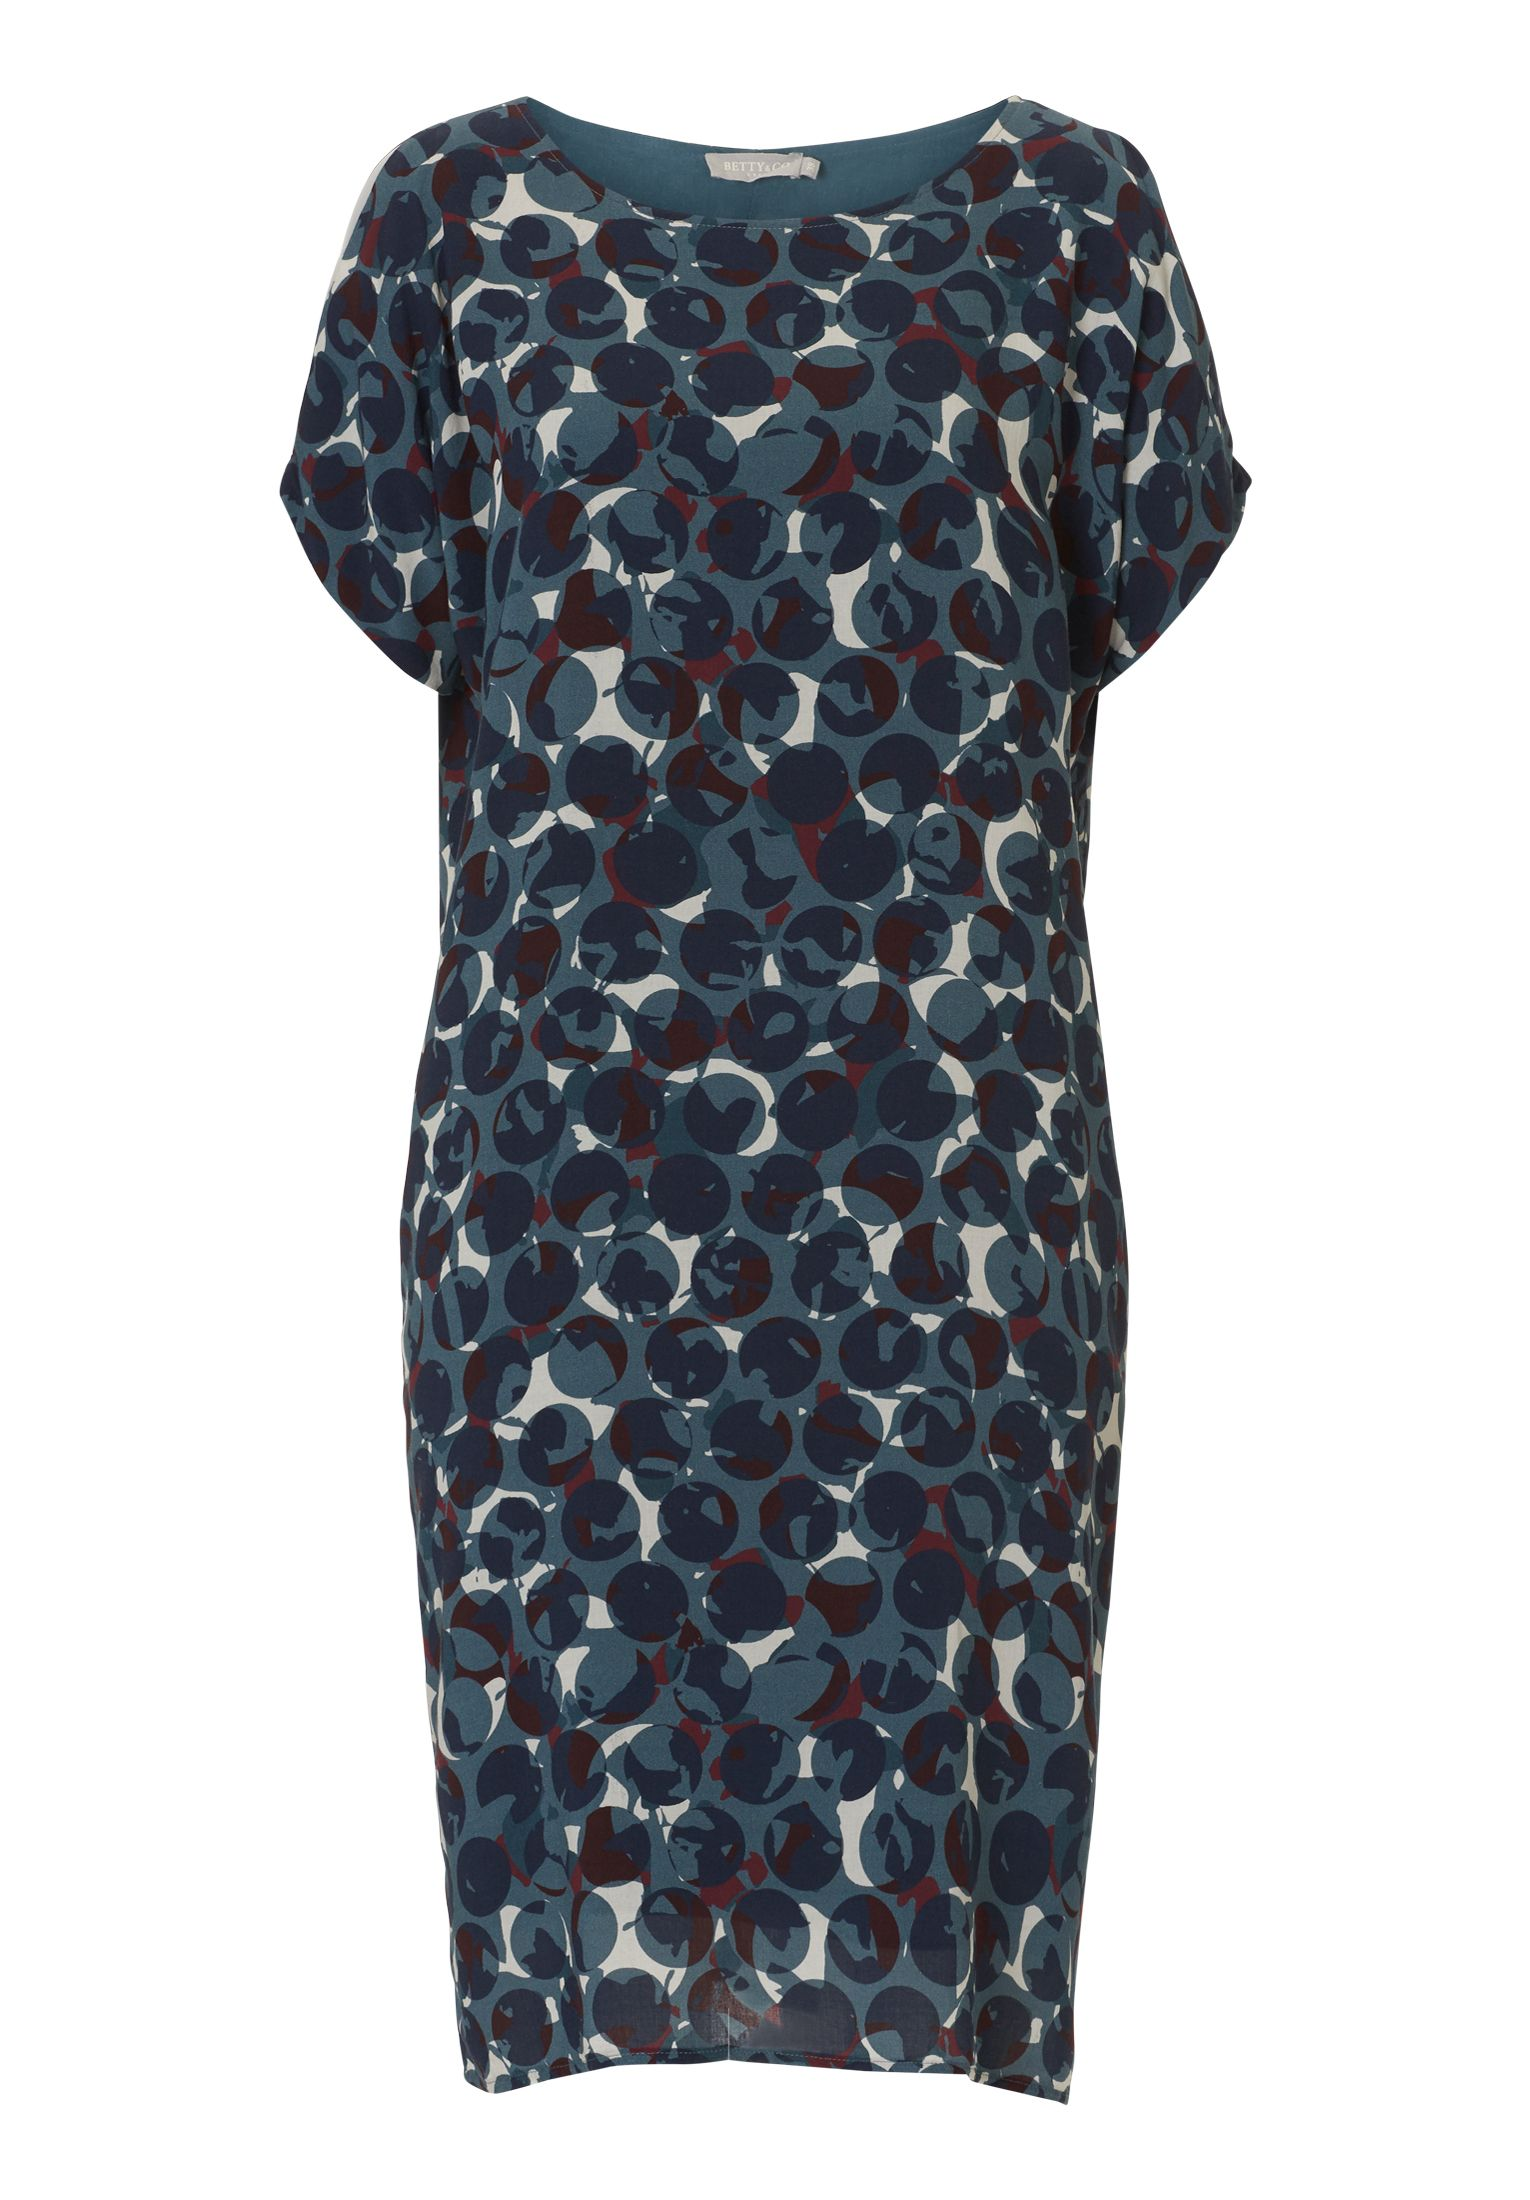 Betty & Co. Graphic print dress, Multi-Coloured